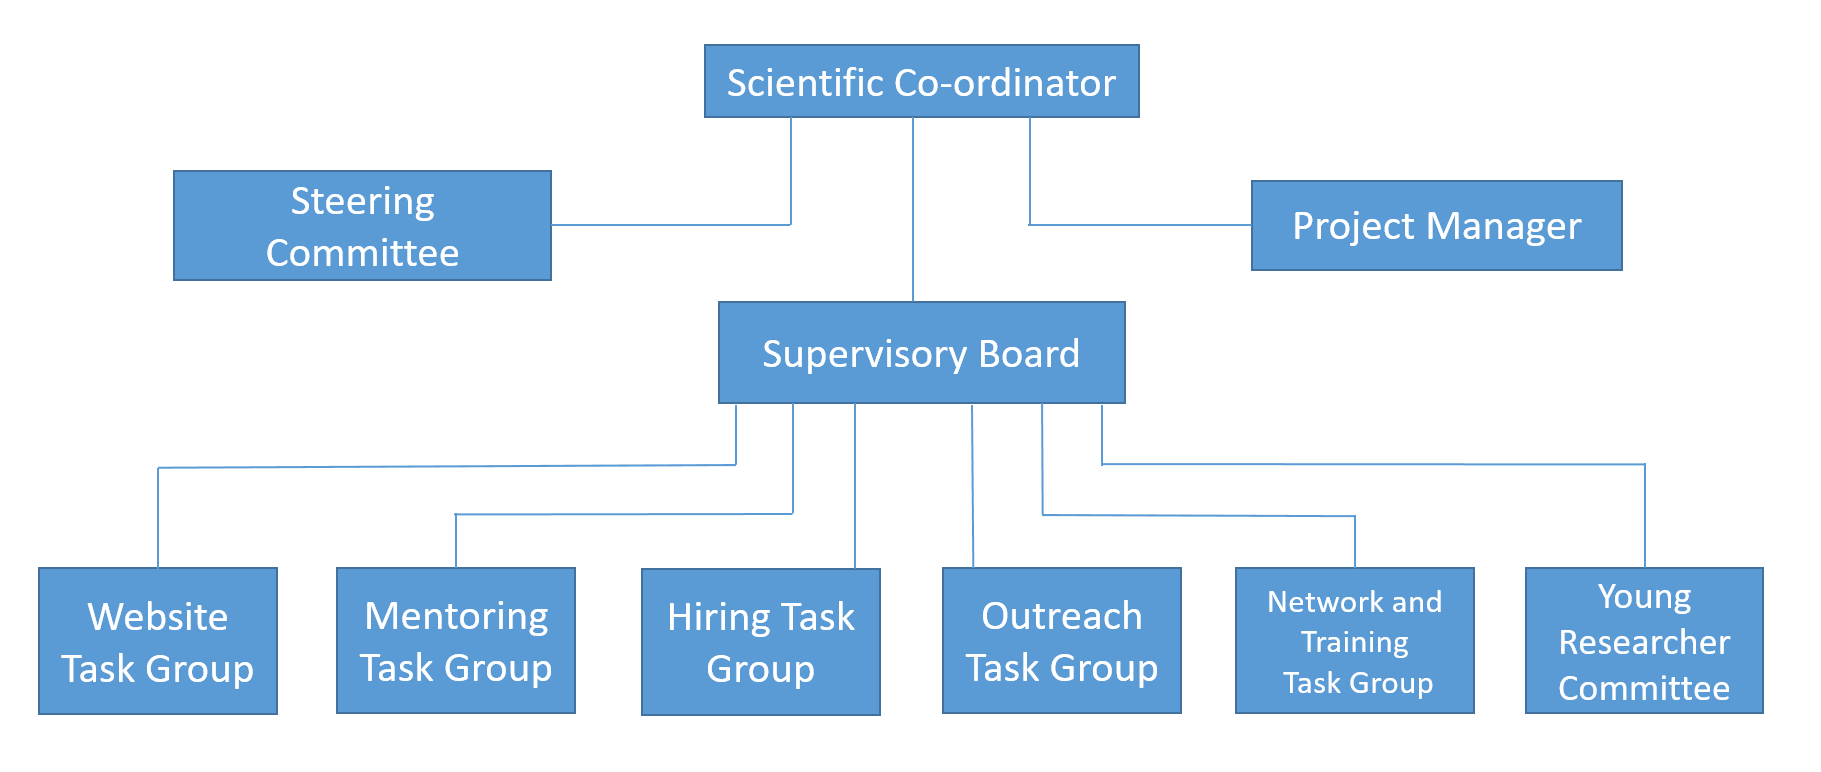 SAGEX organisational structure diagram.